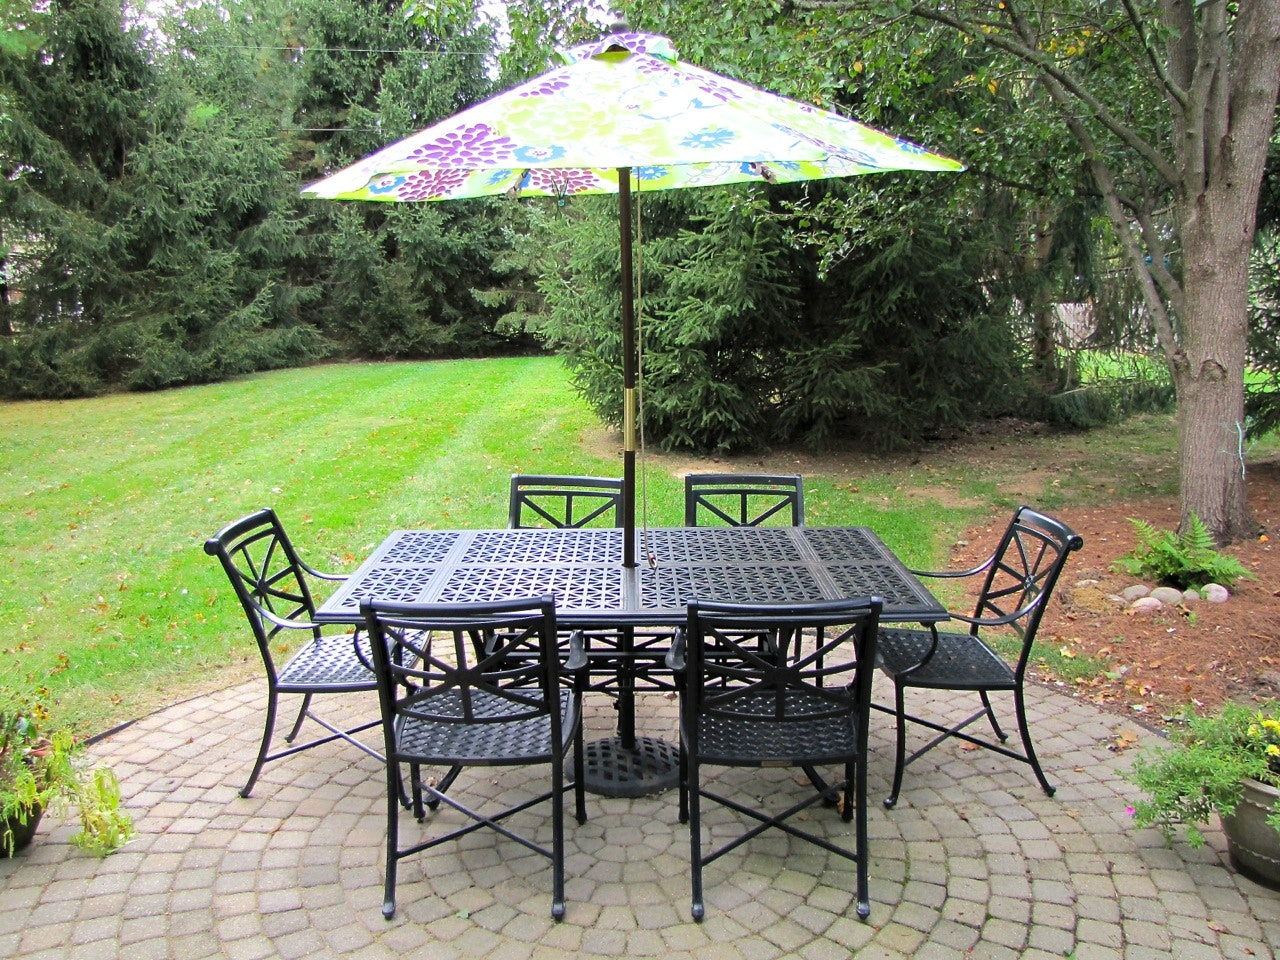 Smith And Hawken Edinborough Patio Dining Table And Chairs. Patio Table For Umbrella. Patio Stones Natural. Patio And Porch Enclosures. Stone Patio Cost Per Sq Ft. Patio Set For 6. Diy Patio Overlay. Patio Decor Lanterns. Patio Deck Austin